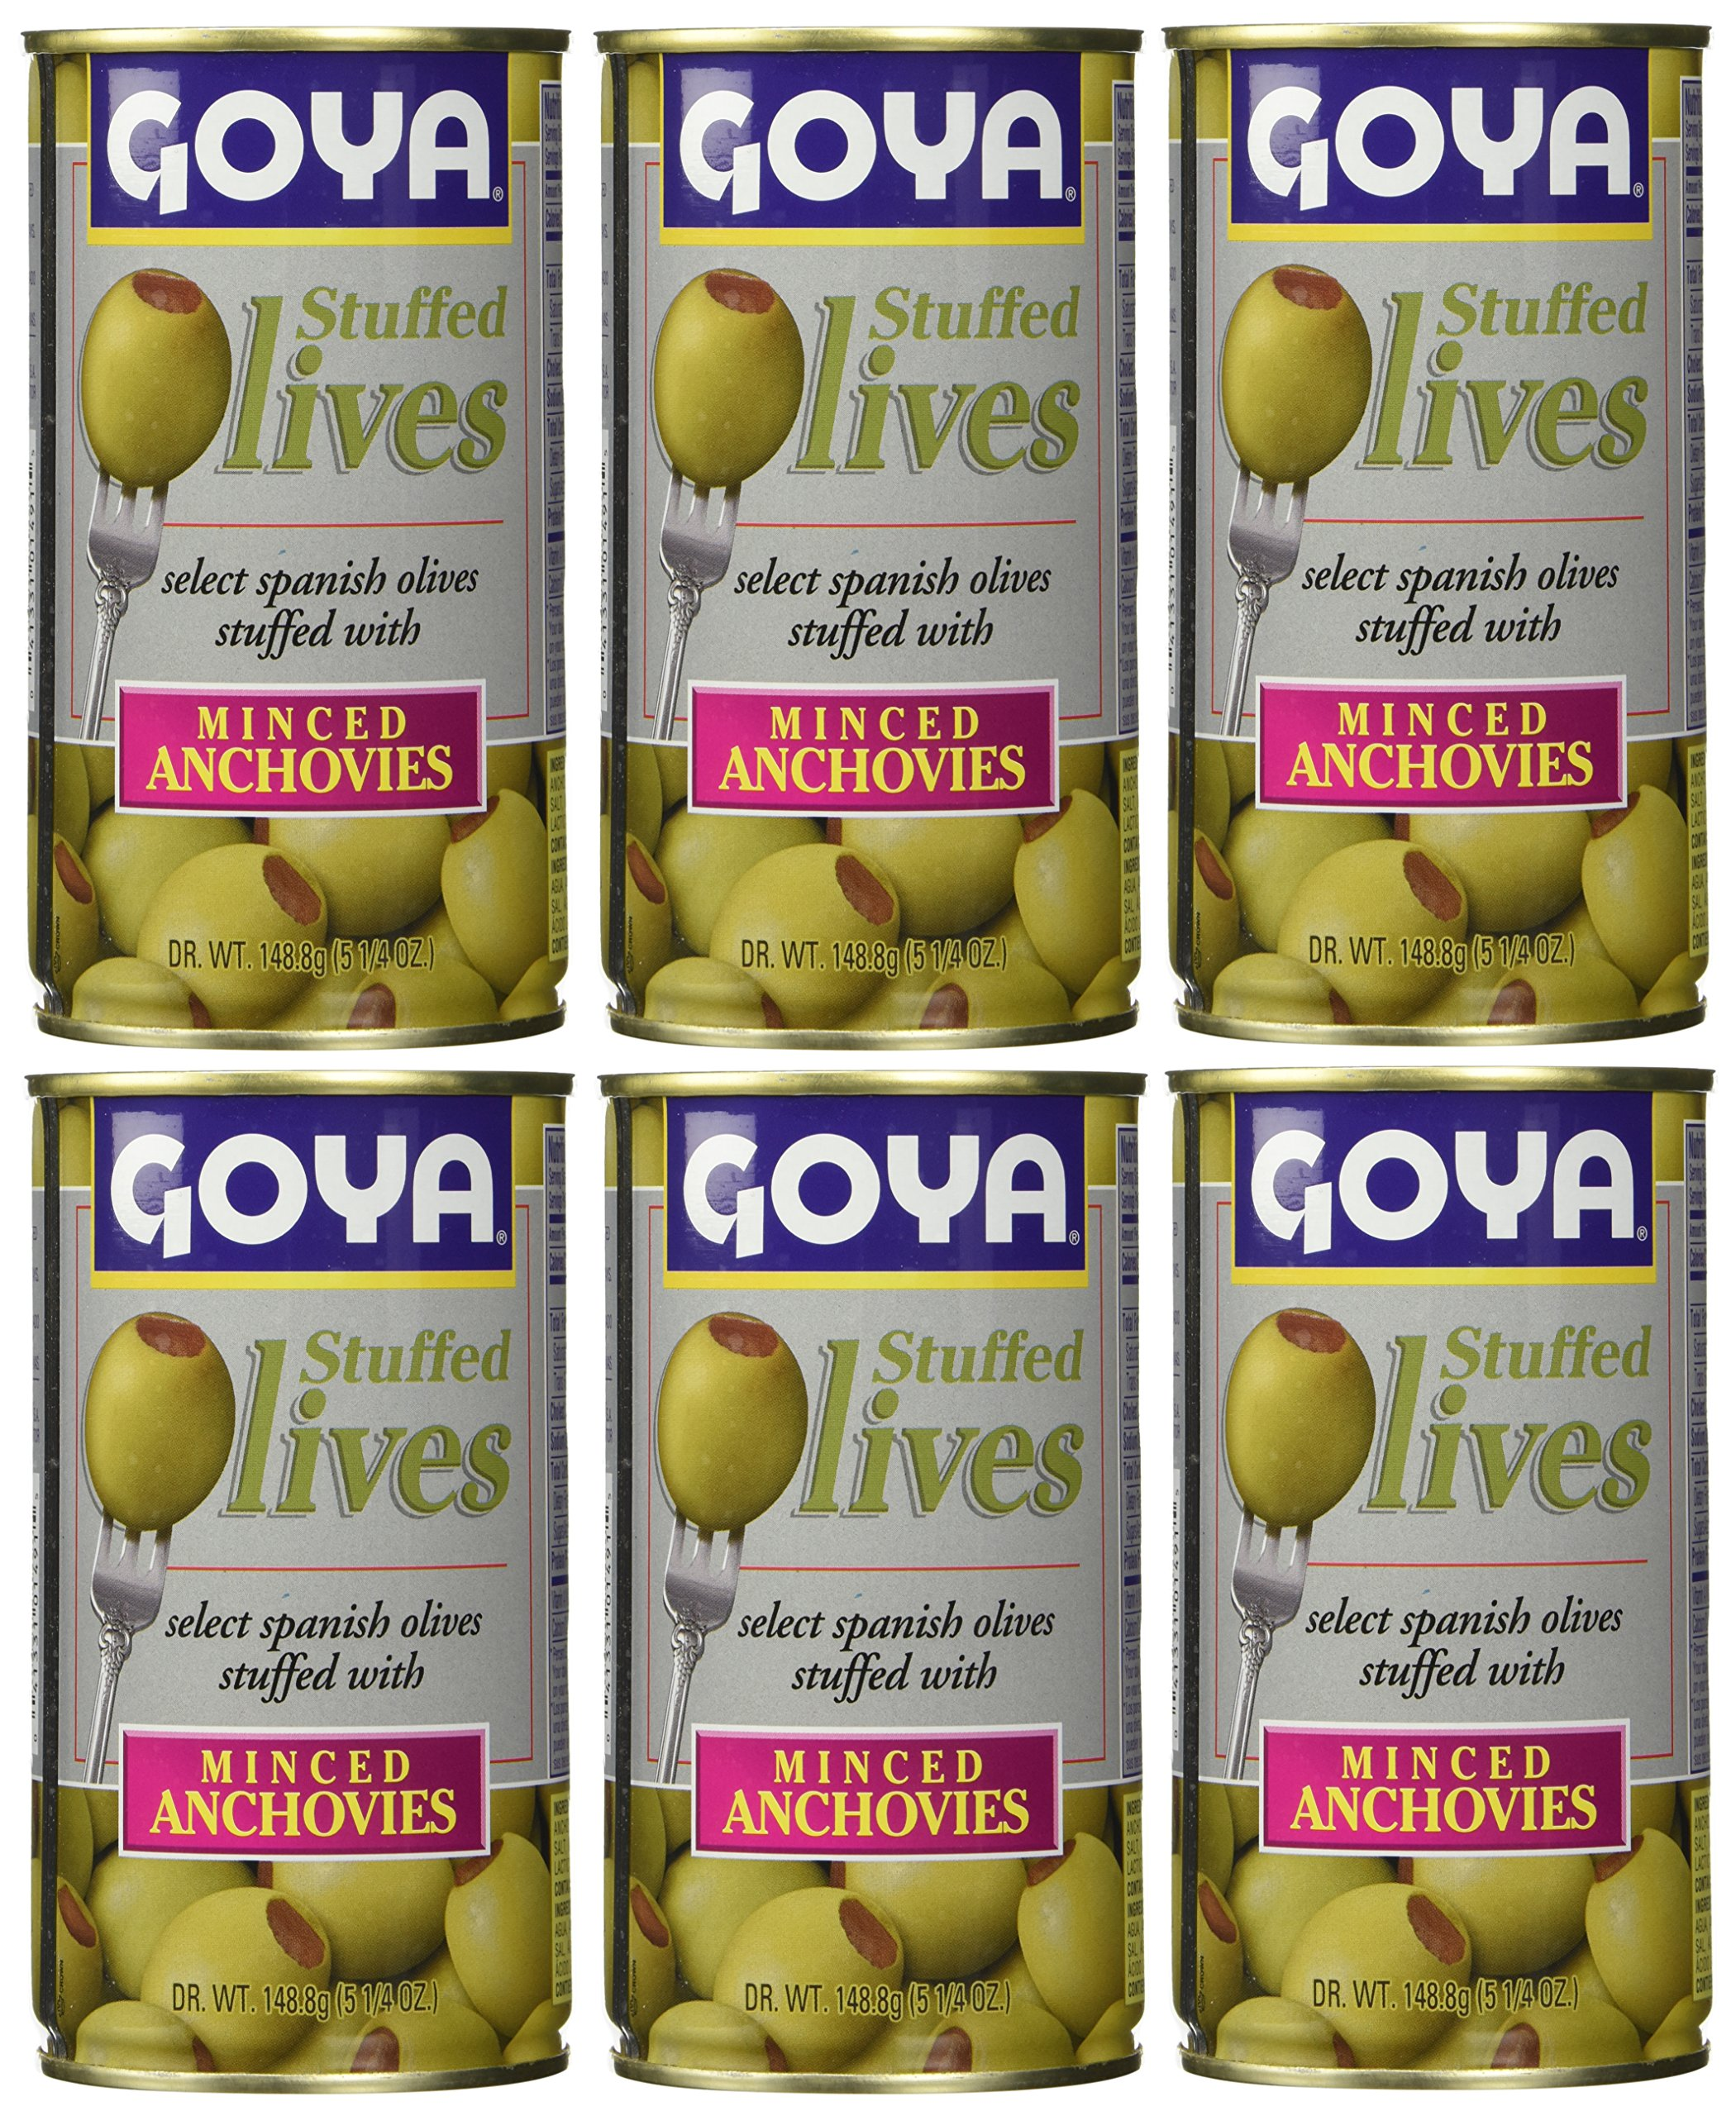 Goya Stuffed Olives Minced Anchovies 5.25 Ounces (Pack of 06)